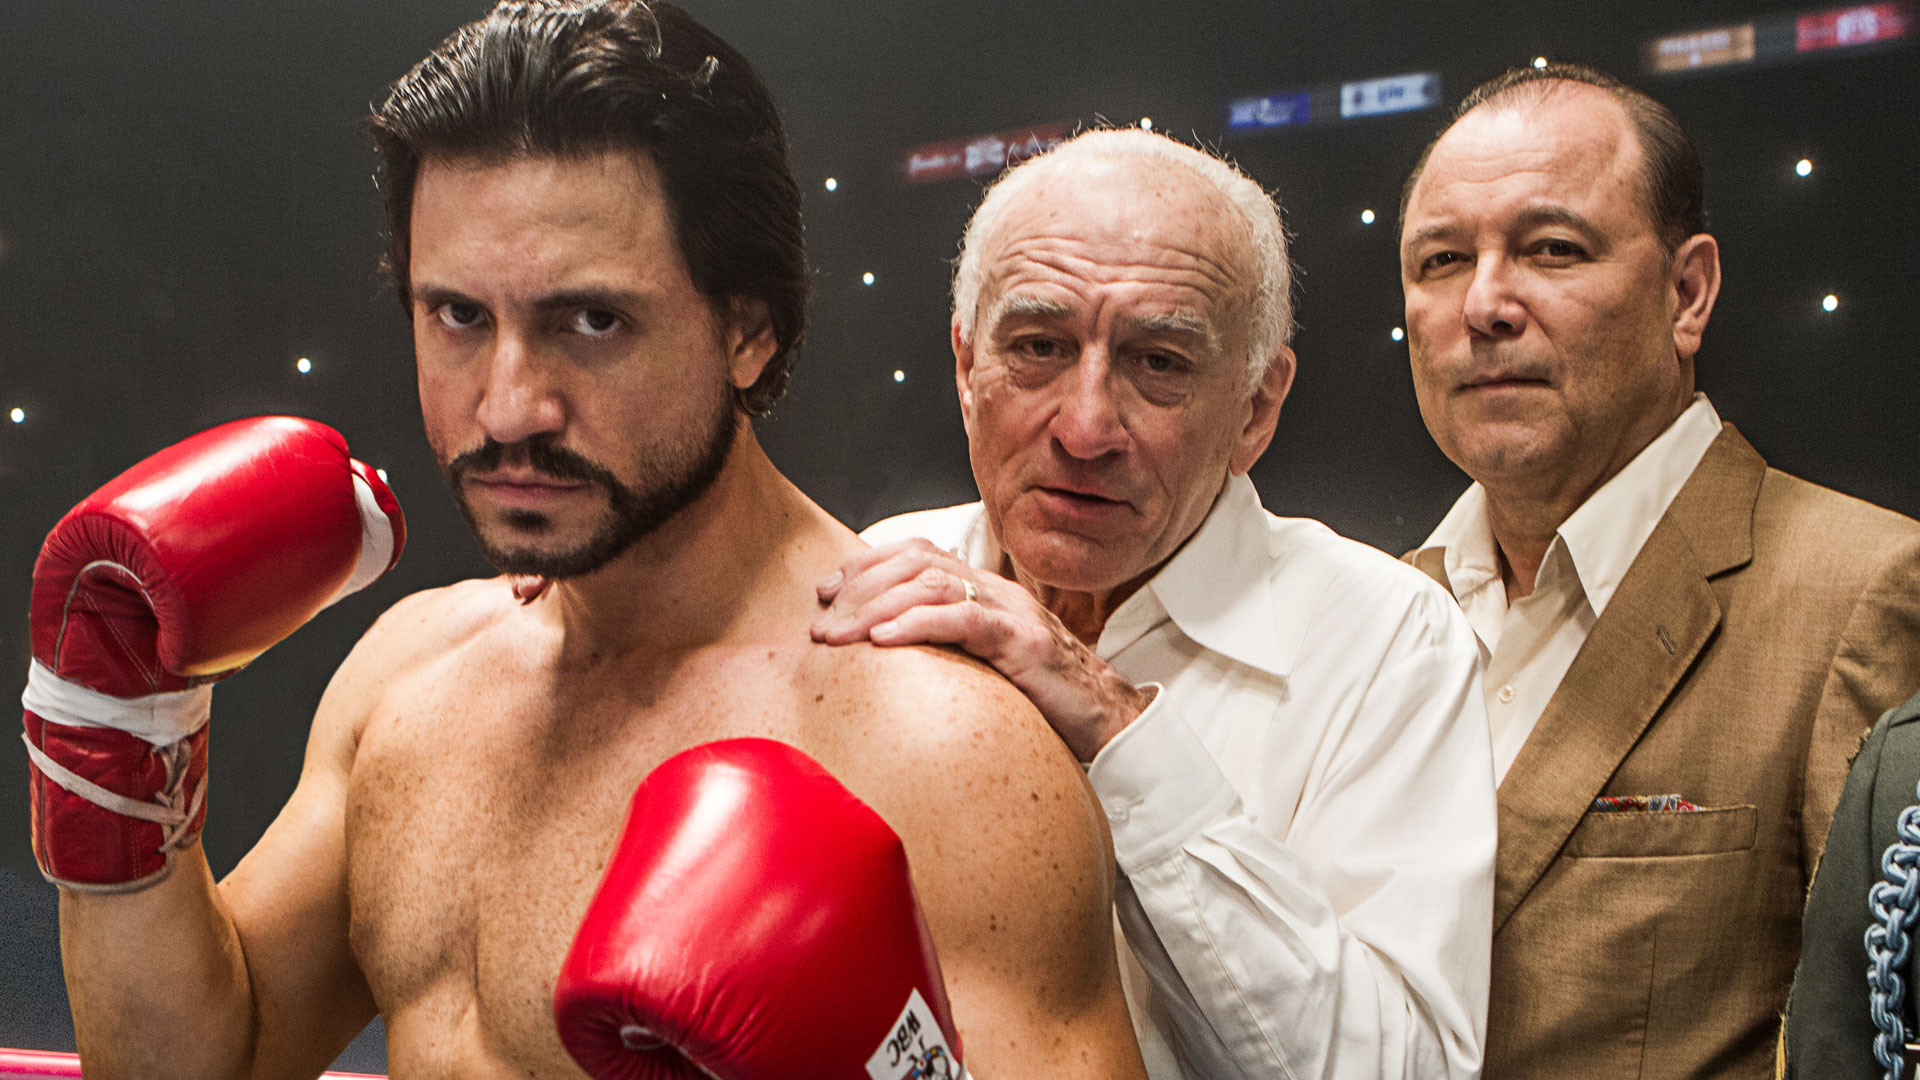 2. HANDS OF STONE  The Weinstein Company  The boxing drama biopic about Panamanian boxer Roberto Durán, directed by Venezuelan filmmaker Jonathan Jakubowicz and starring Edgar Ramírez, Robert De Niro, and Ruben Blades, earned $4.7 million.